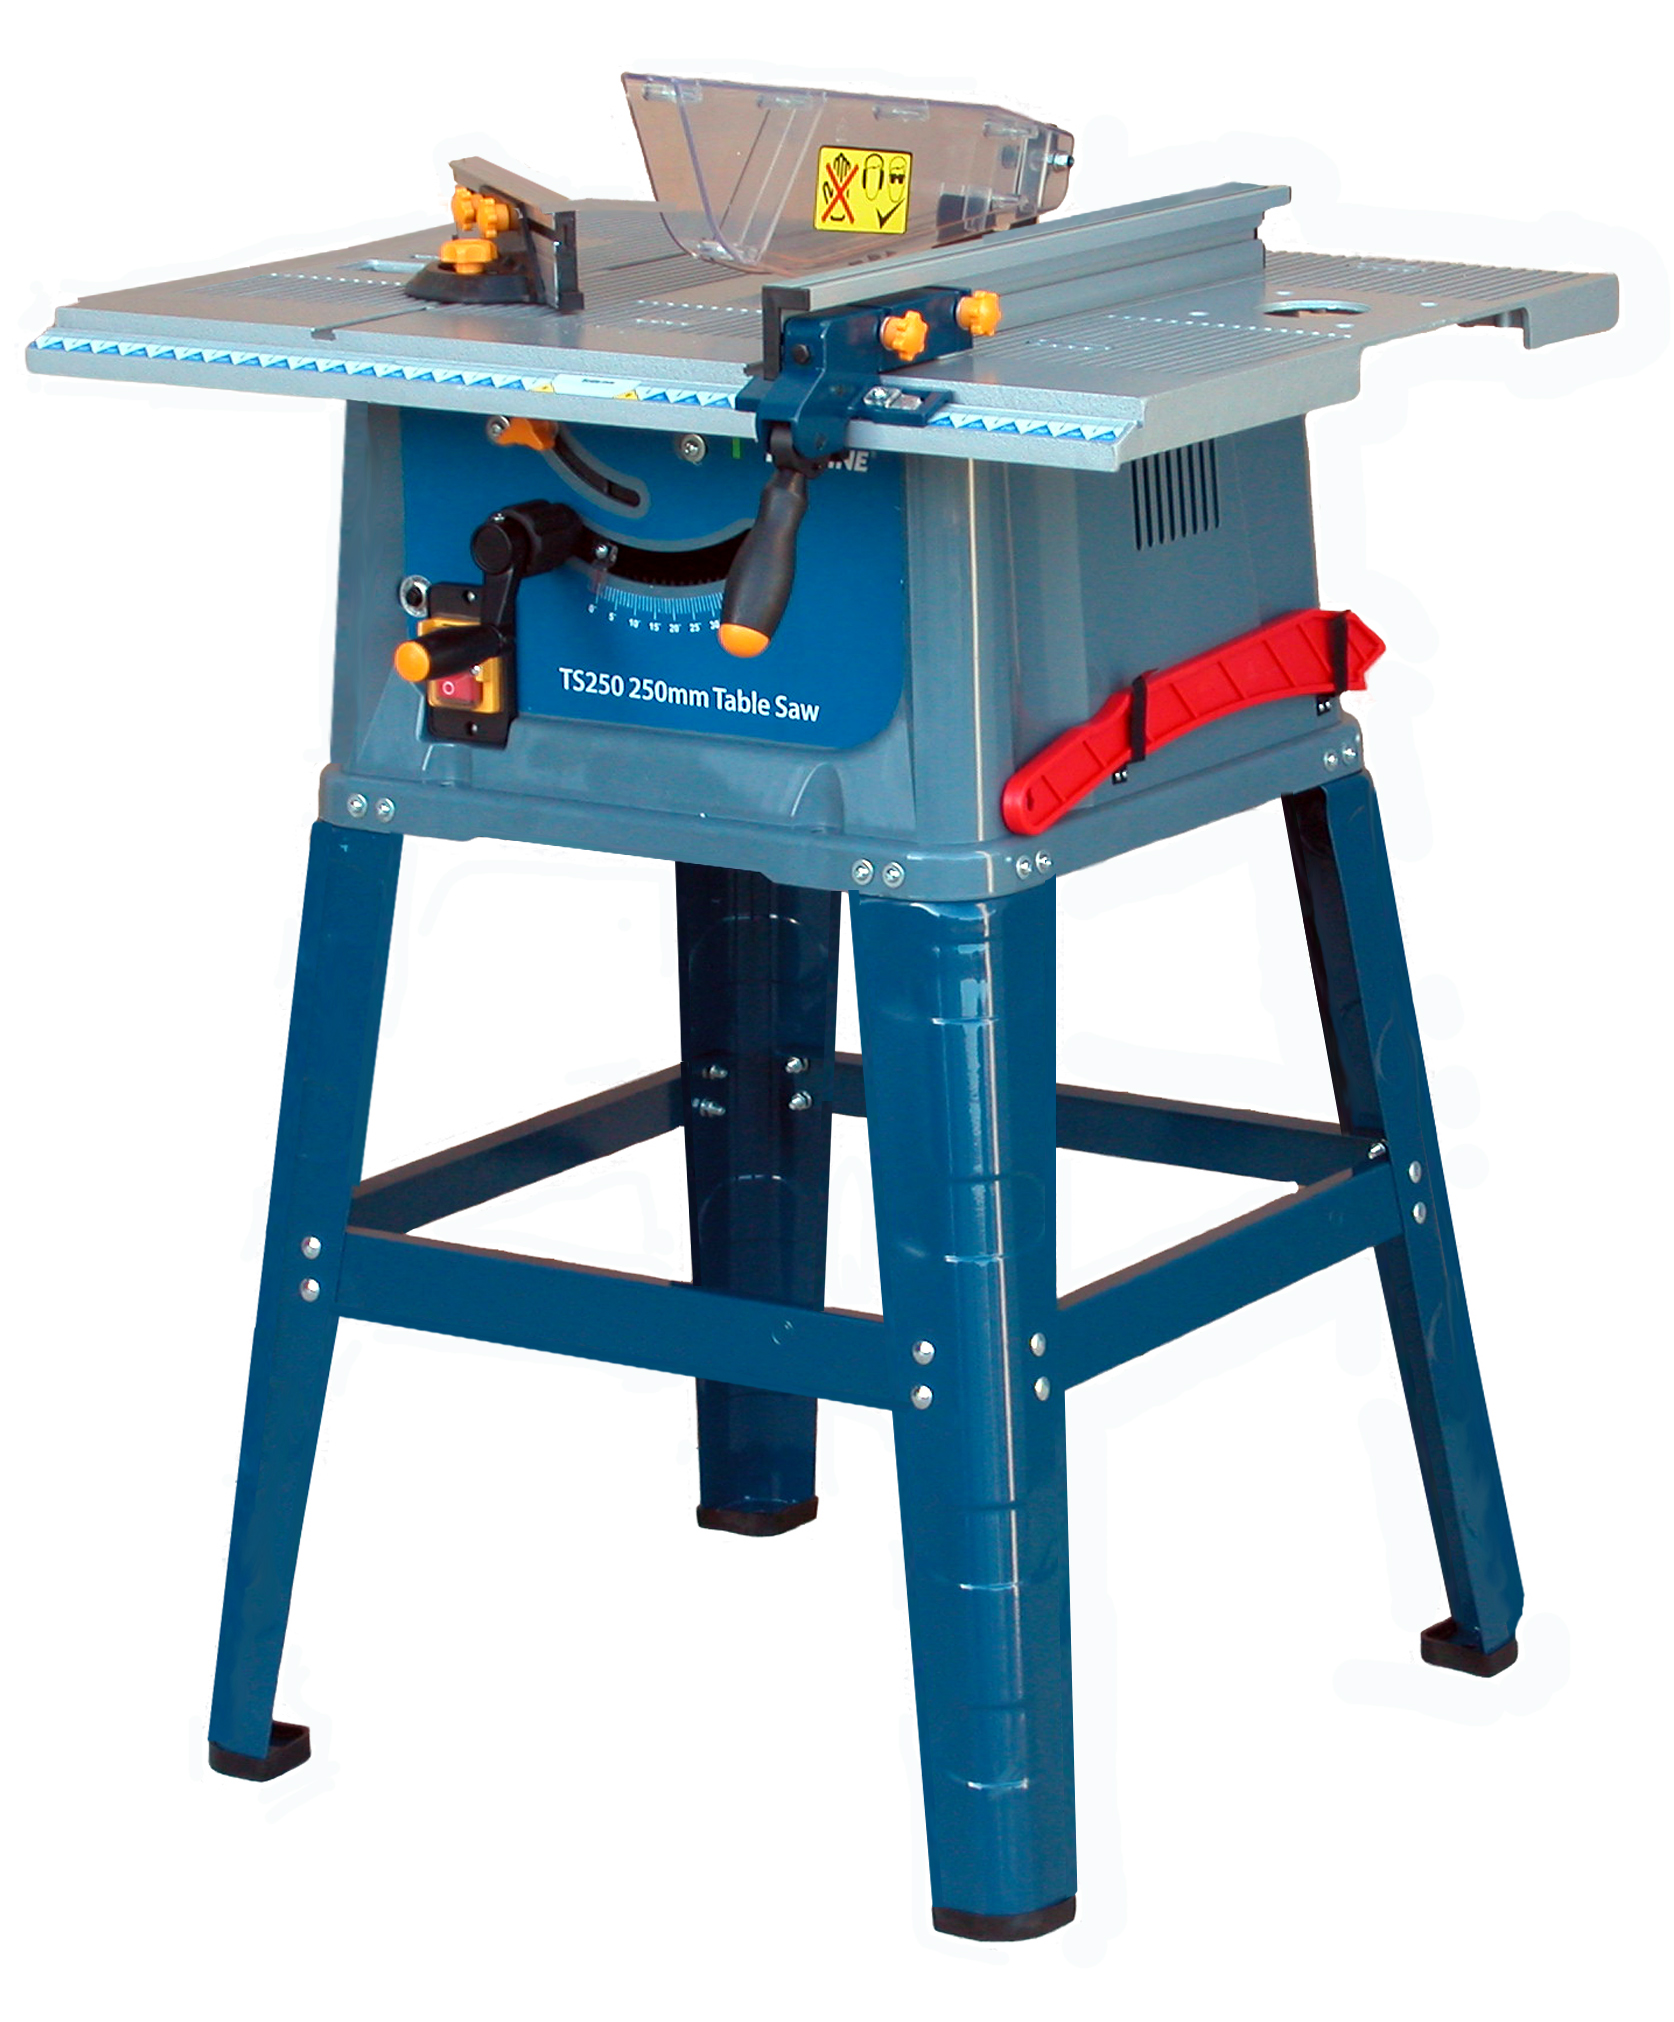 Buy online 250mm Table Saw